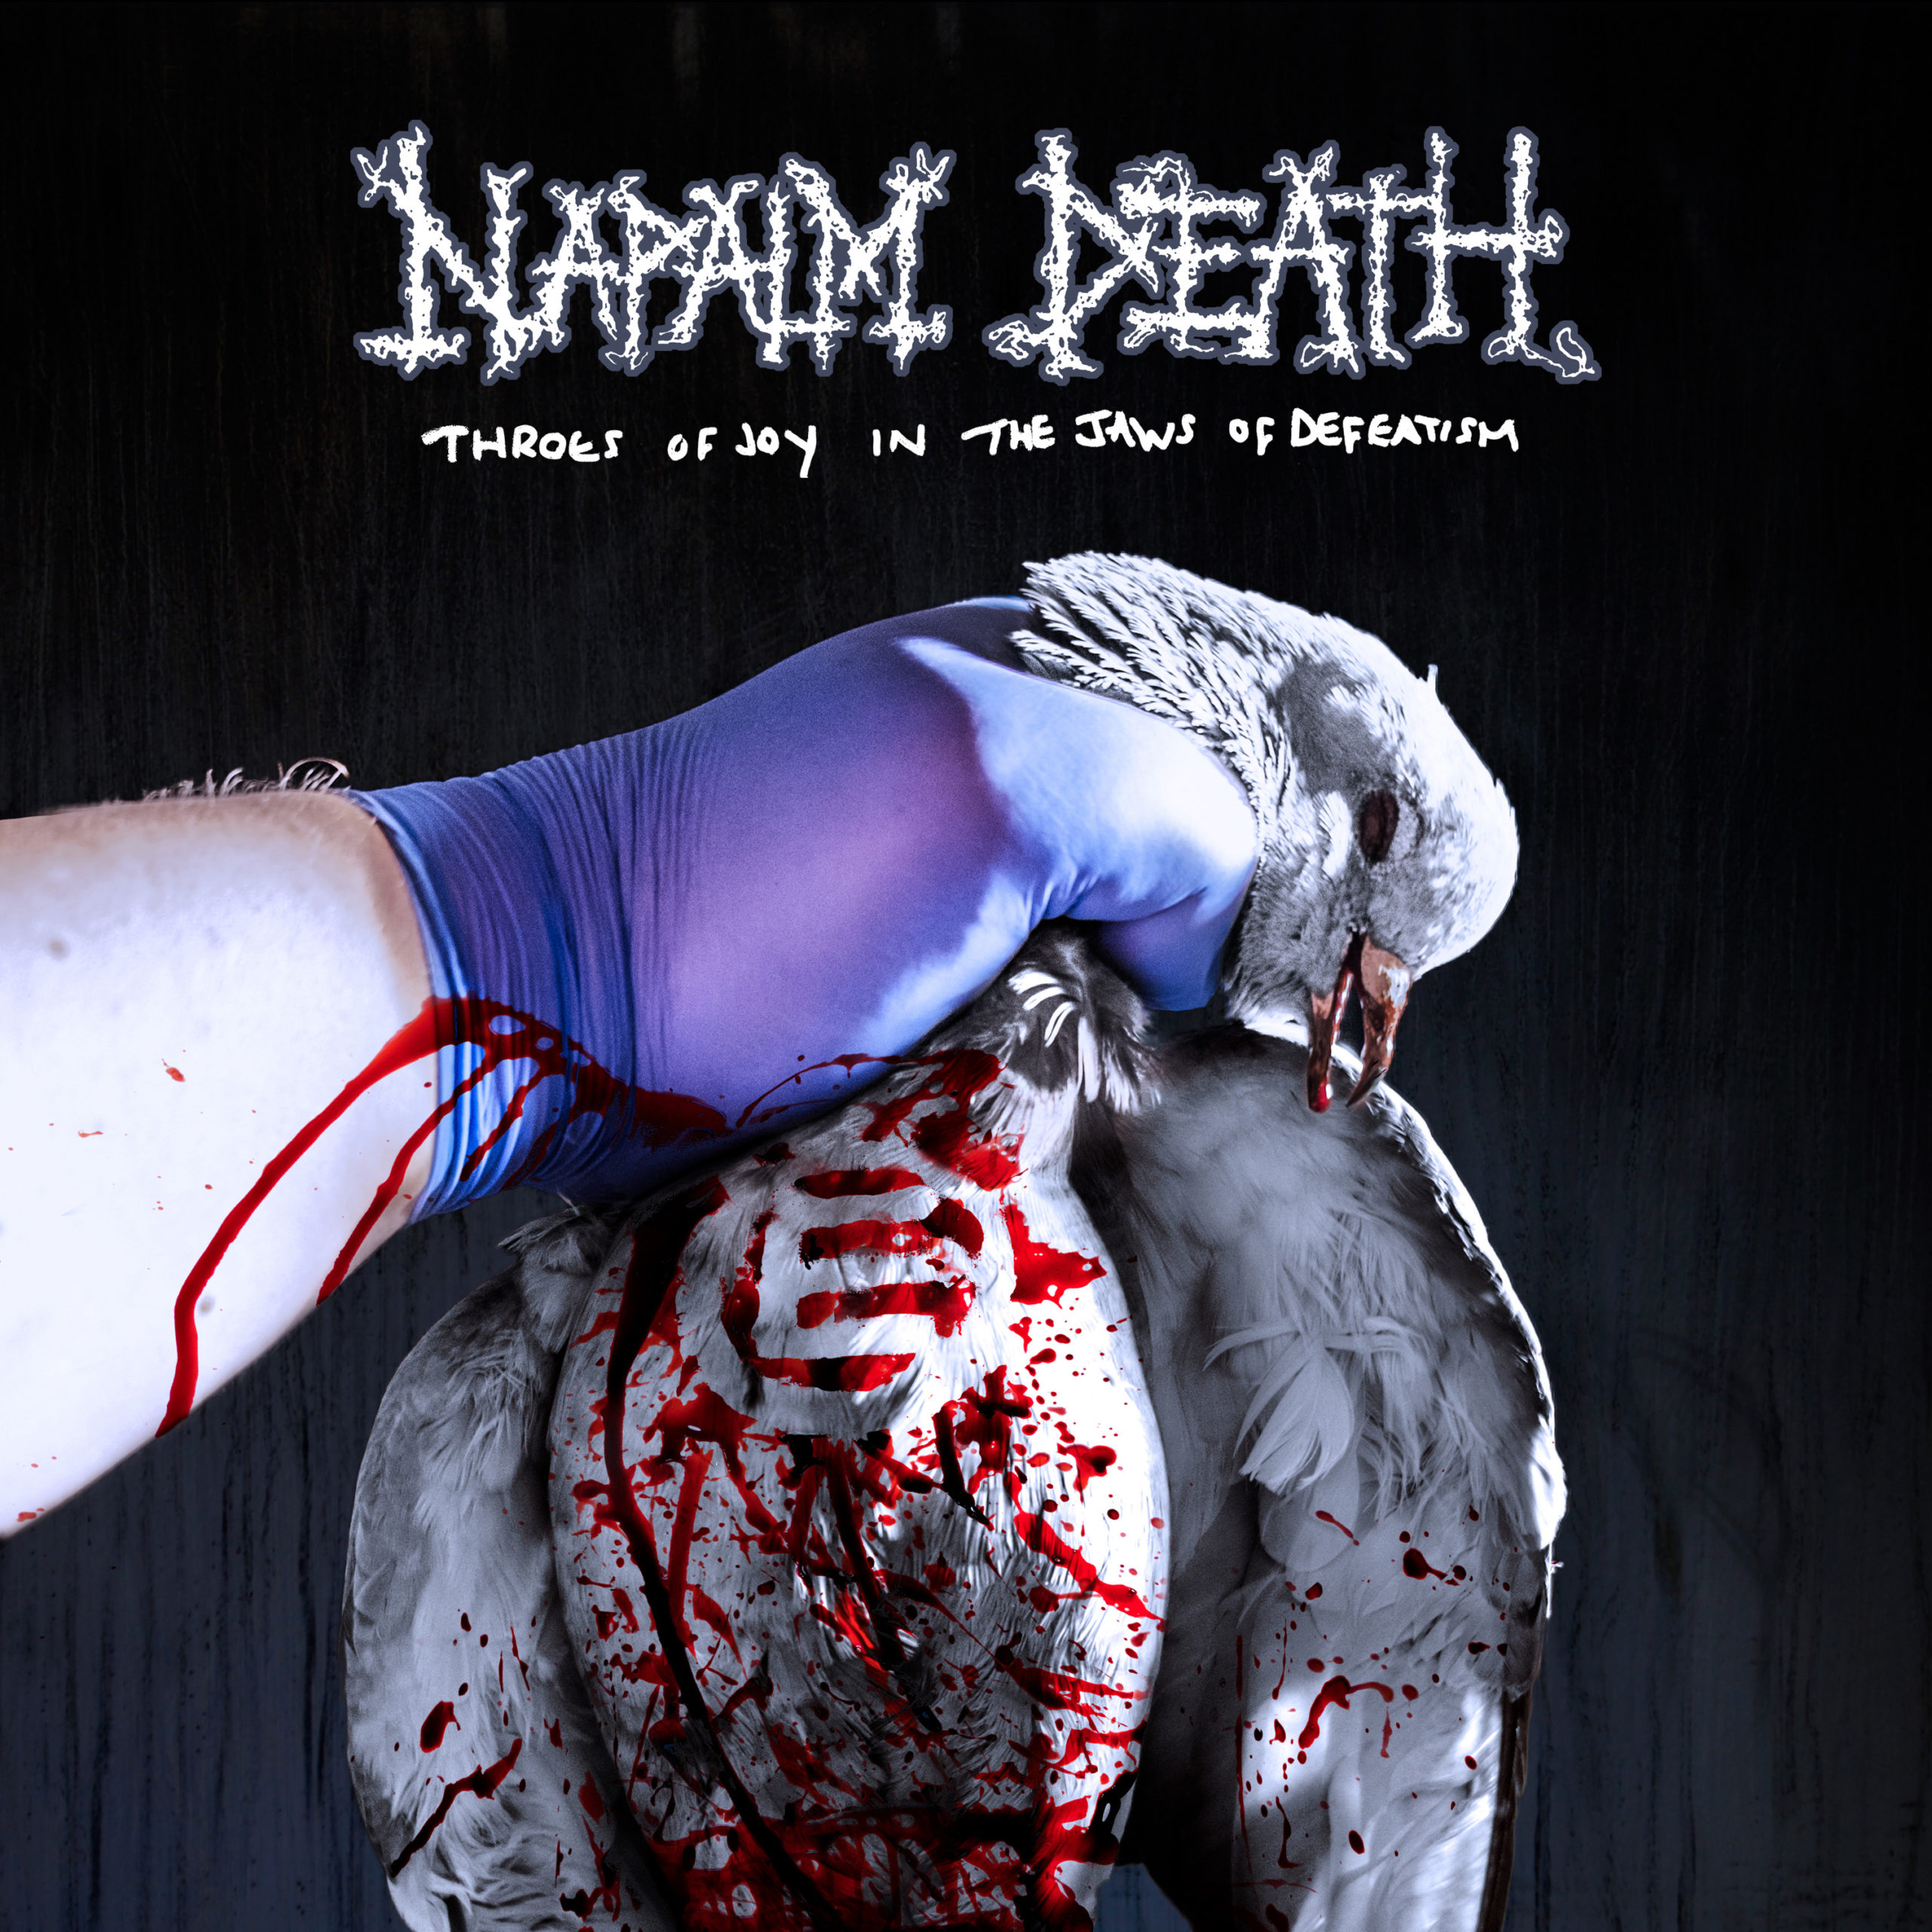 REVIEW: Napalm Death – Throes of Joy in the Jaws of Defeatism